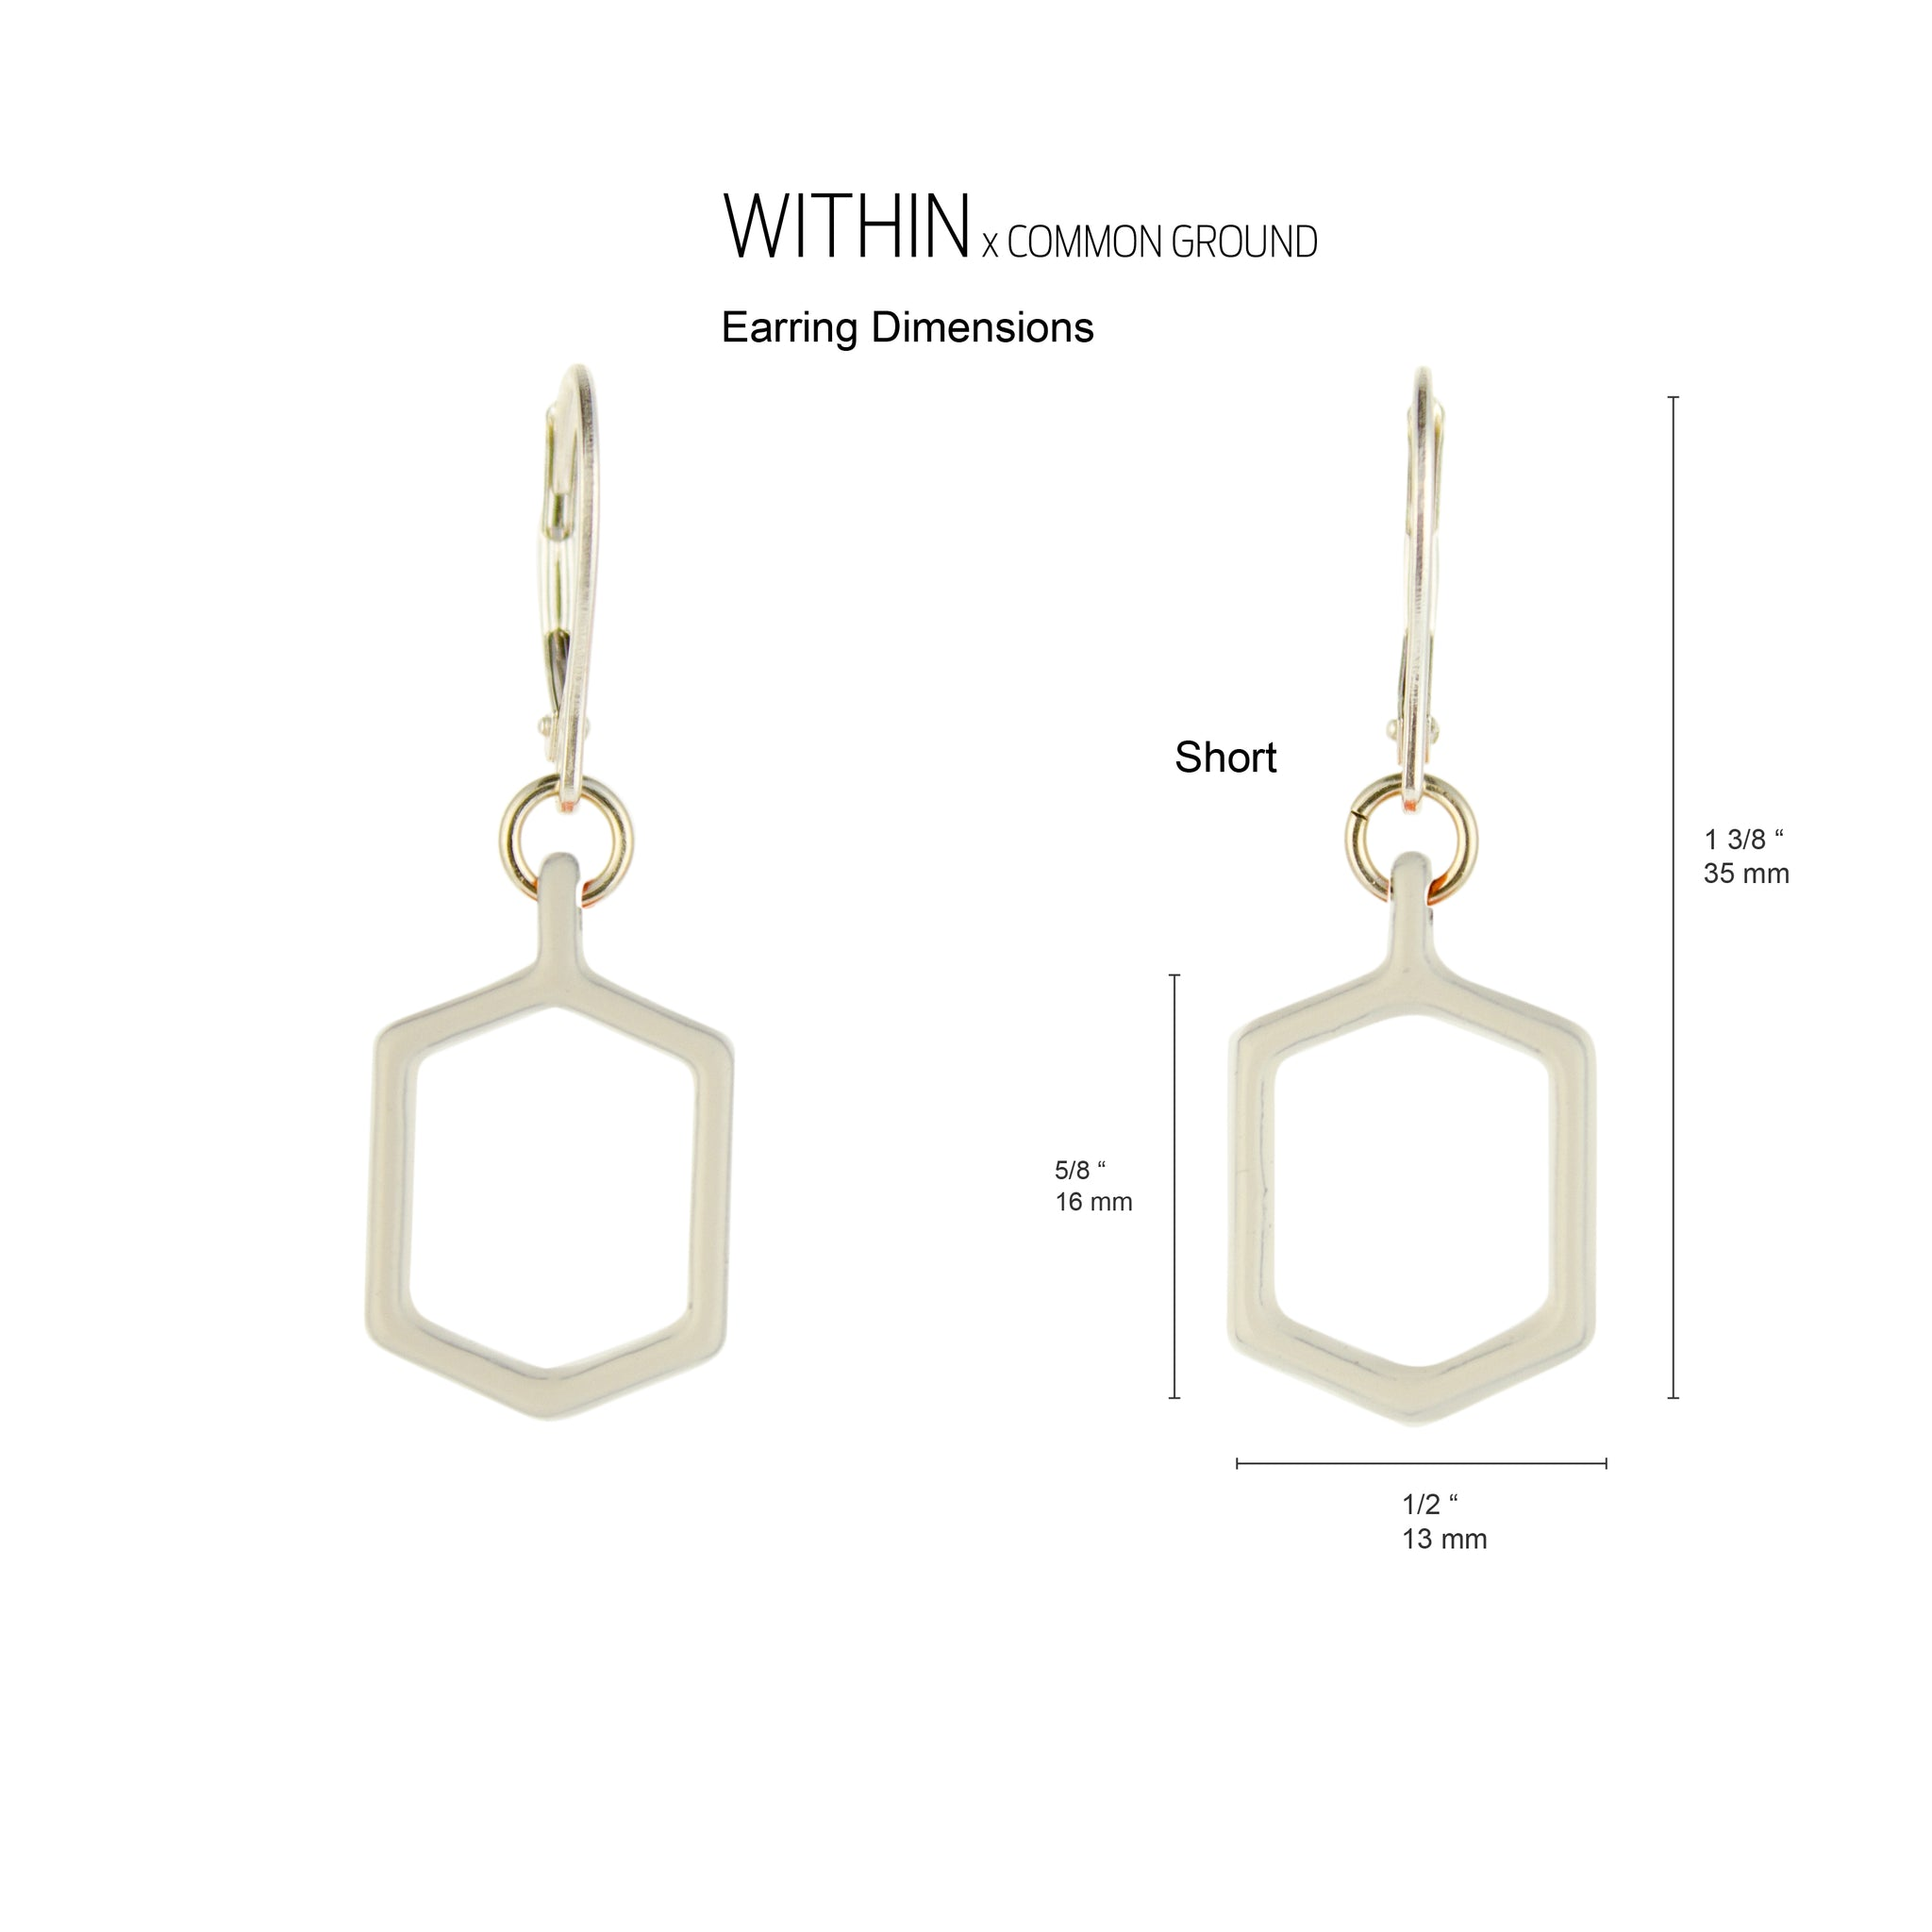 Bright_White - WITHIN x COMMON GROUND Earring Dim View